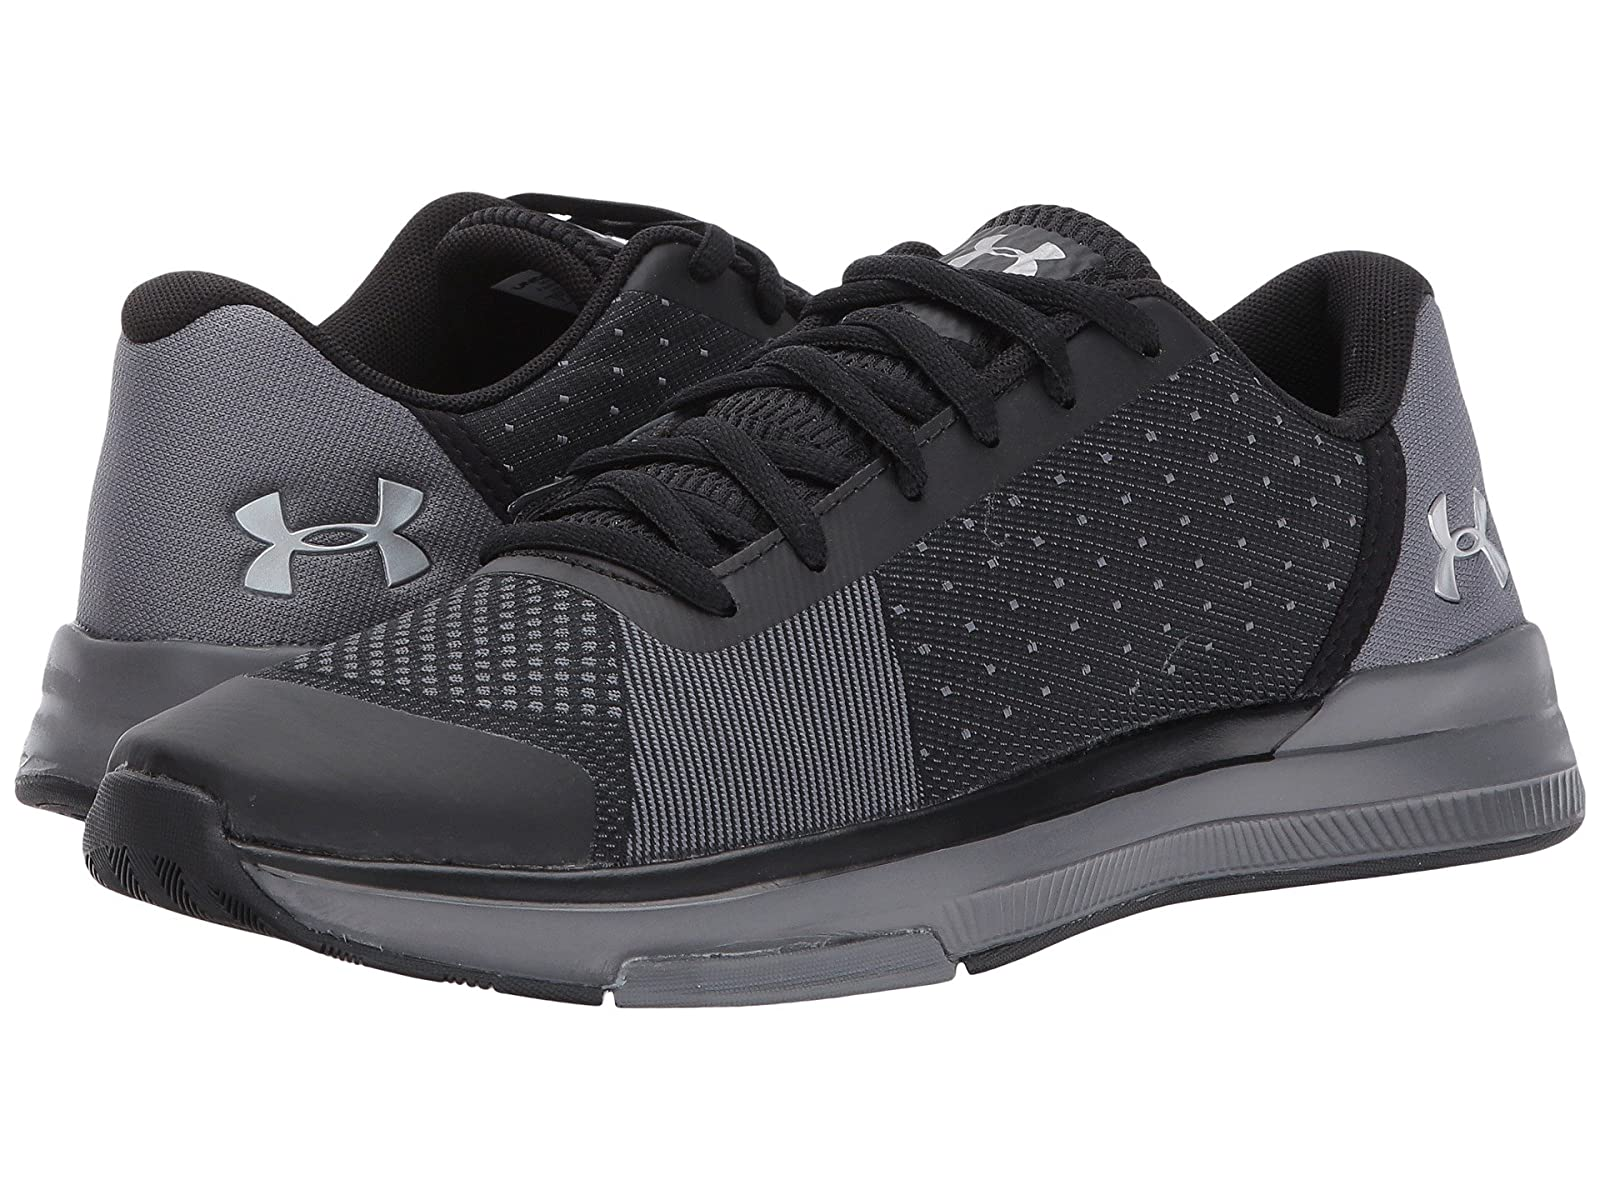 Under Armour UA ShowstopperCheap and distinctive eye-catching shoes